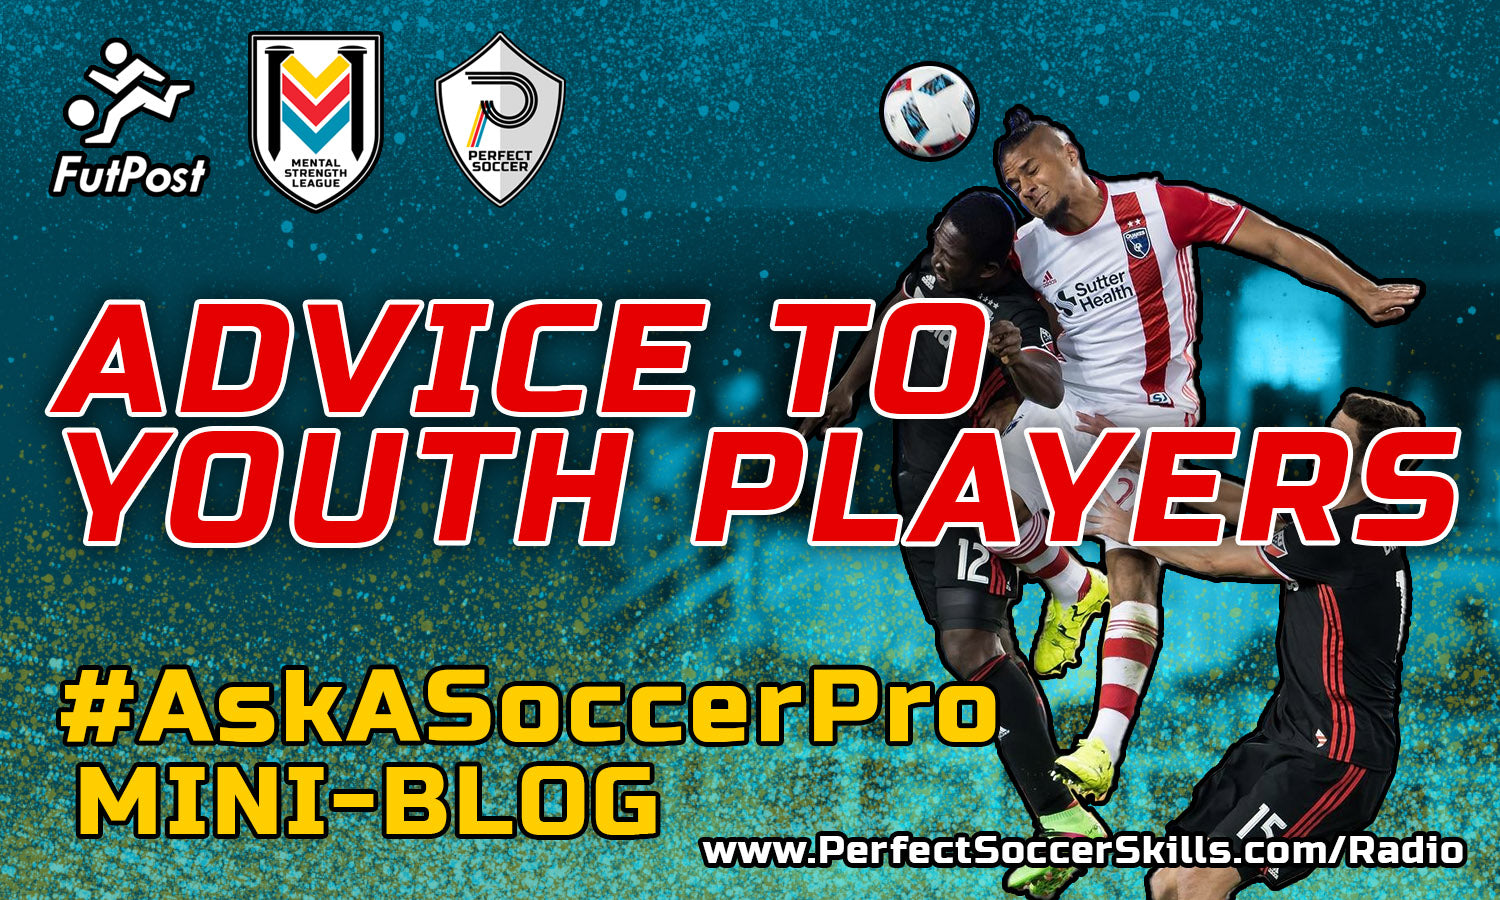 Advice To Youth Players #AskASoccerPro